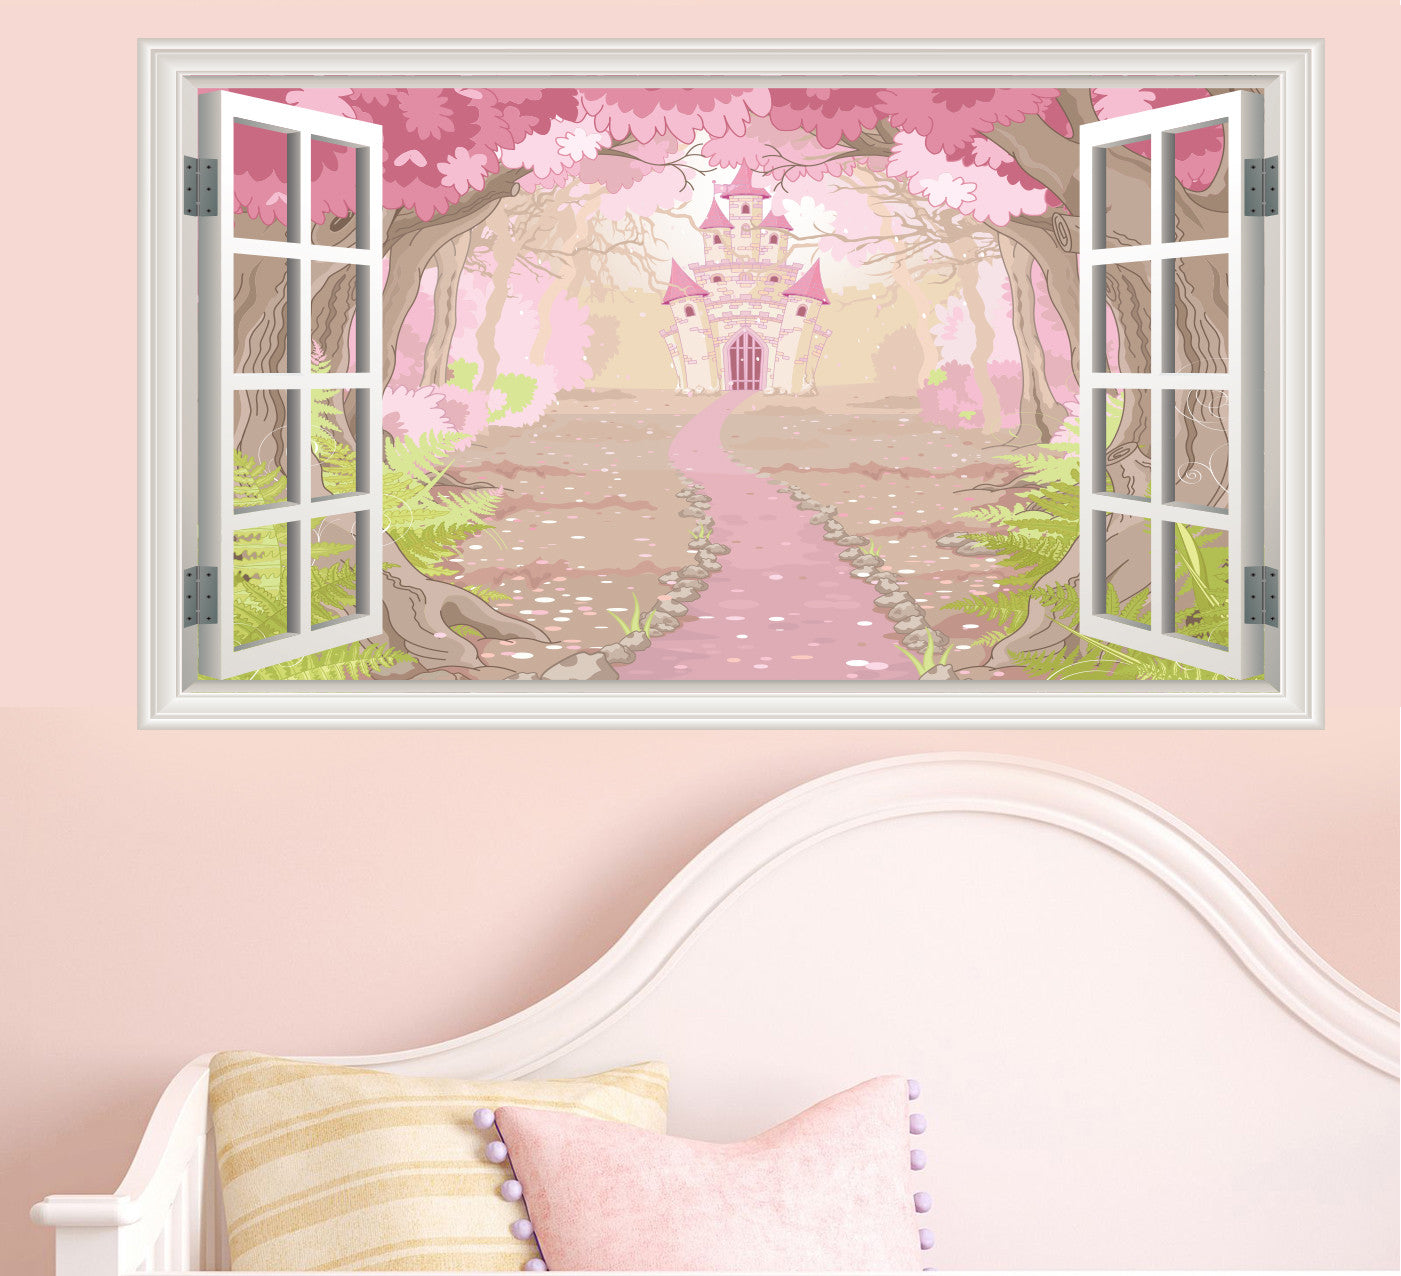 Enchanted Fairytale Castle Window Scene Wall Stickers   Childrens Bedroom  Decal Mural Transfers